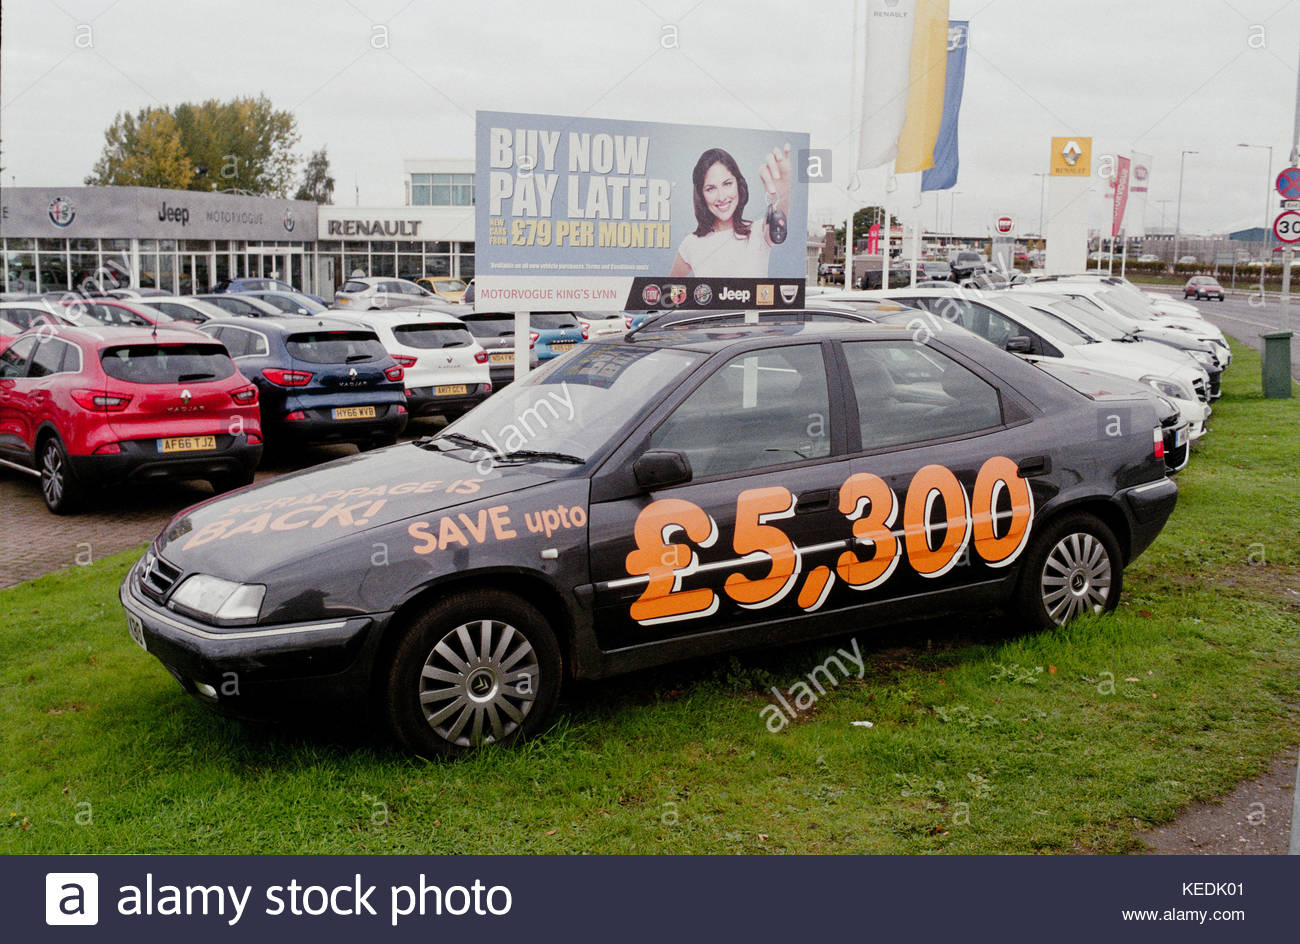 Car Scrappage Scheme Stock Photos Amp Car Scrappage Scheme